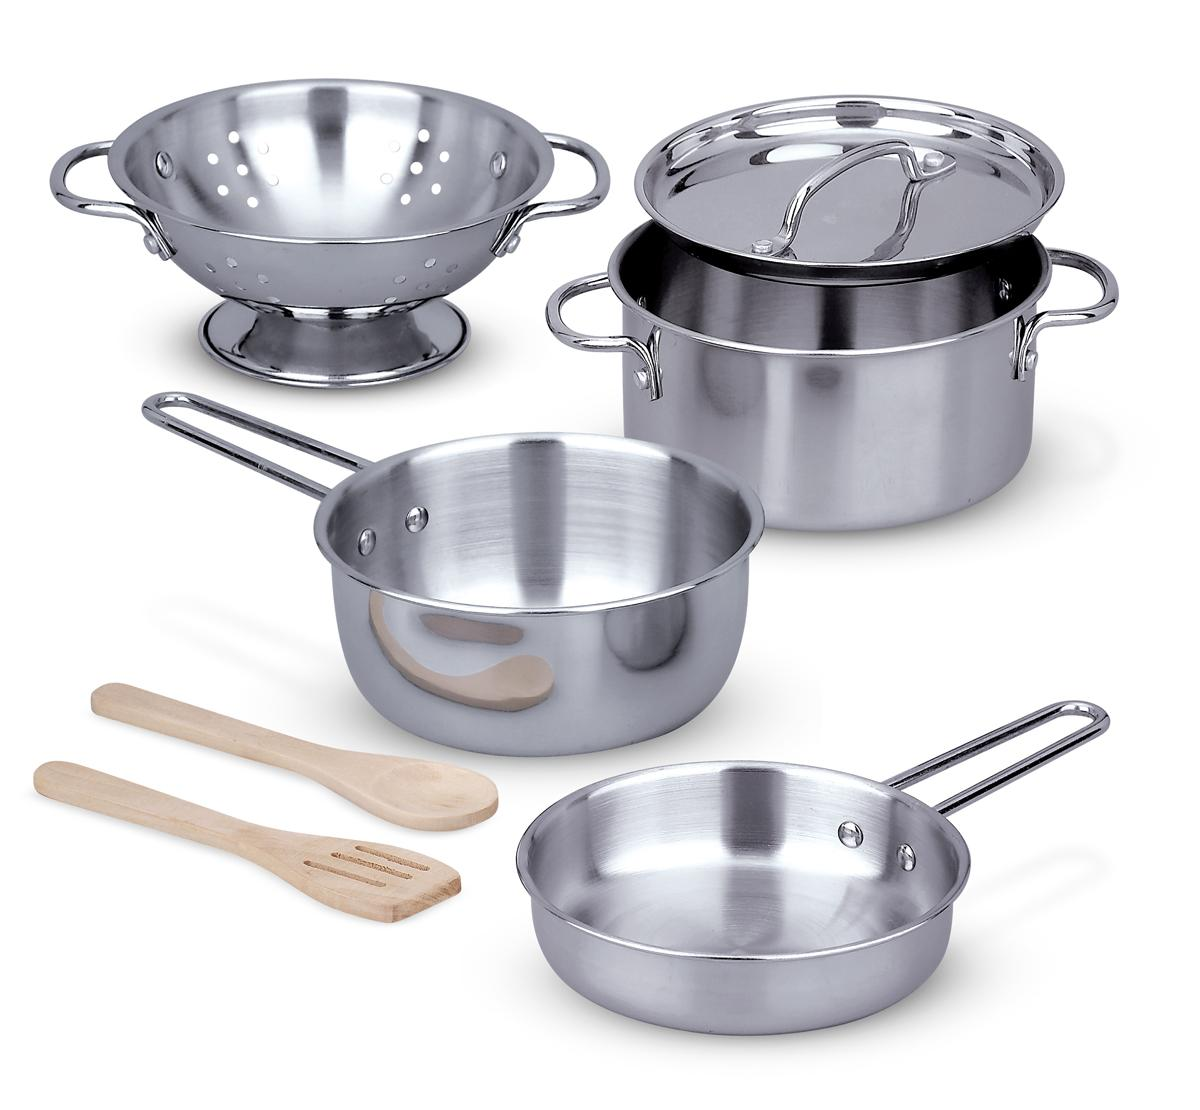 Kitchen Set Pots And Pans: Amazon.com: Melissa & Doug Stainless Steel Pots And Pans